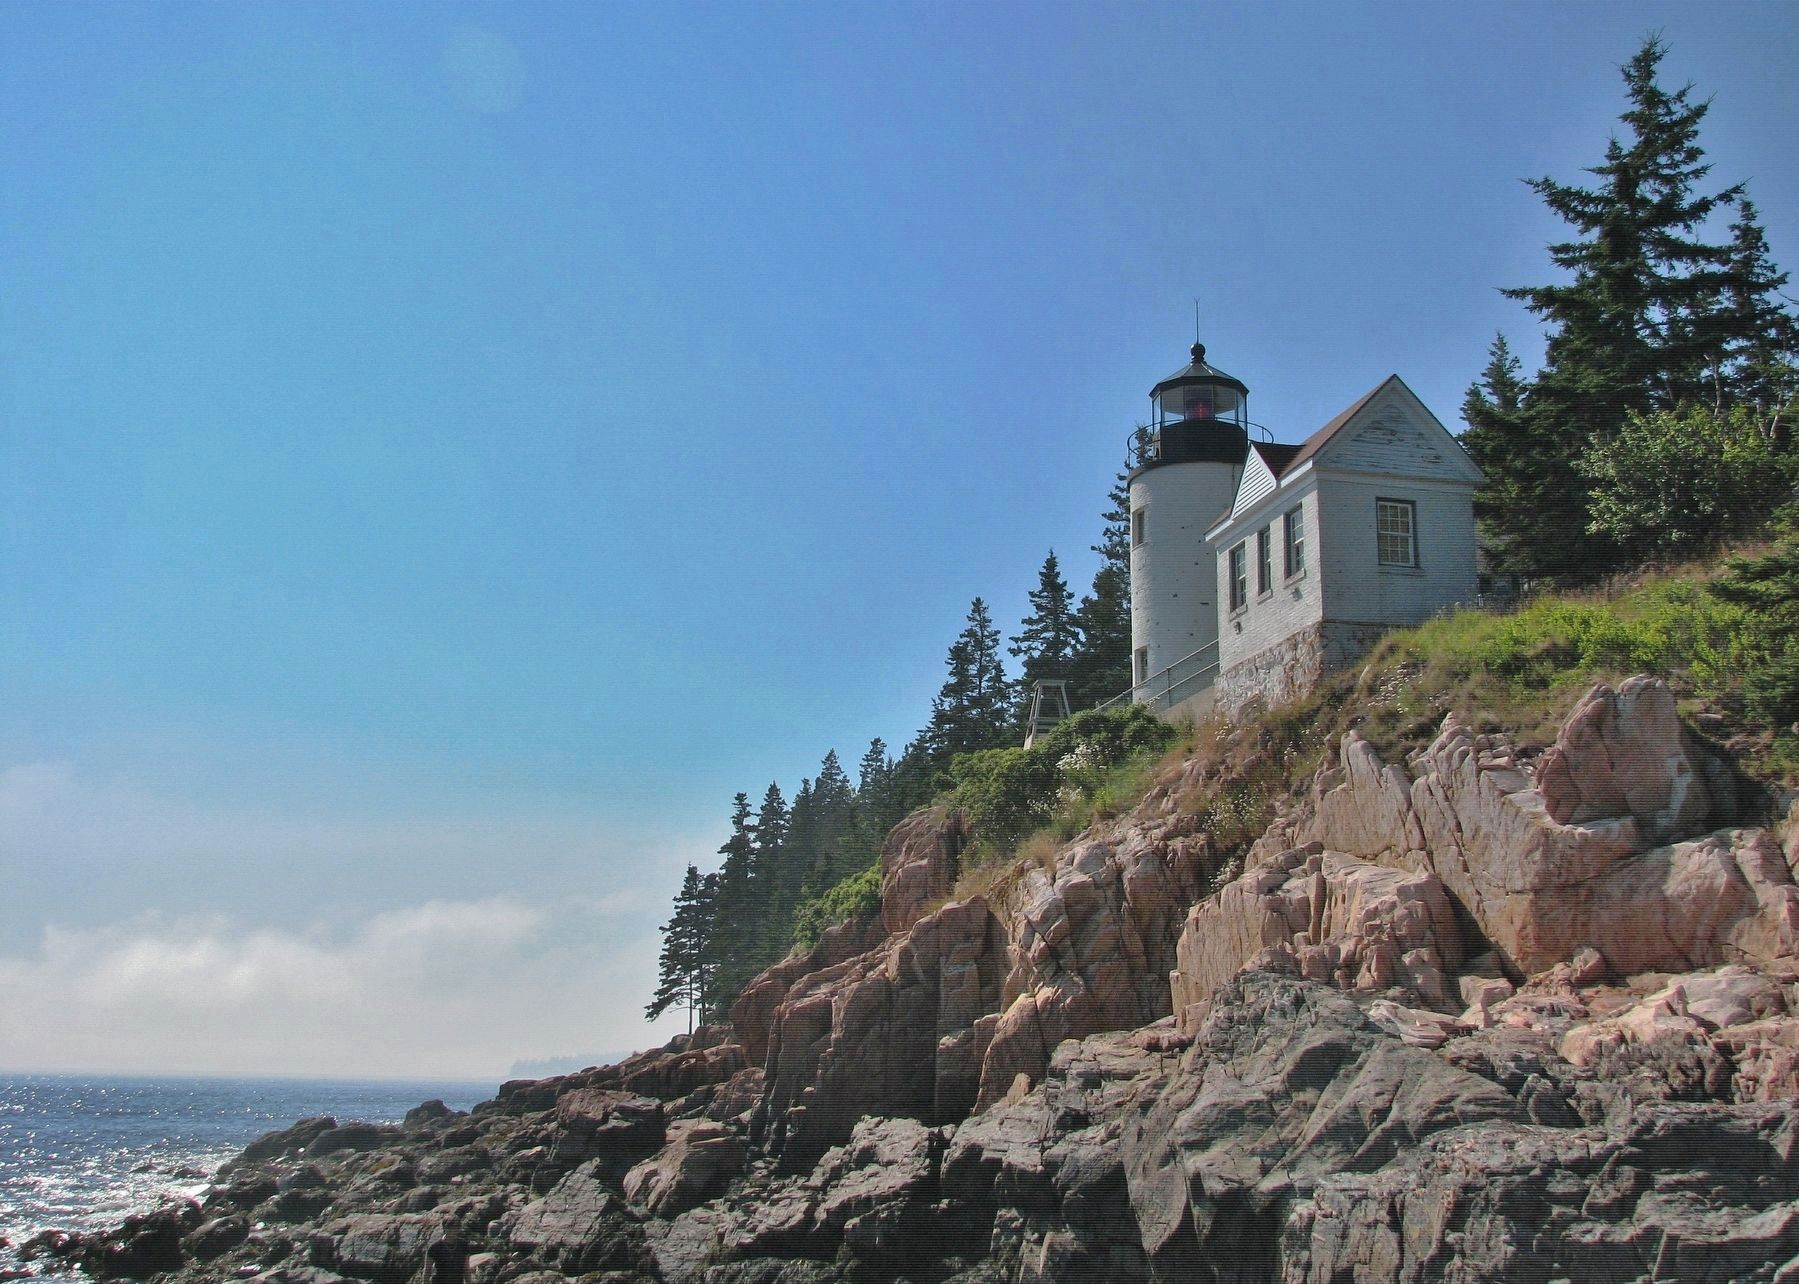 Bass Harbor Head Light Station (<i><b>view from shore below</i></b>) image. Click for full size.